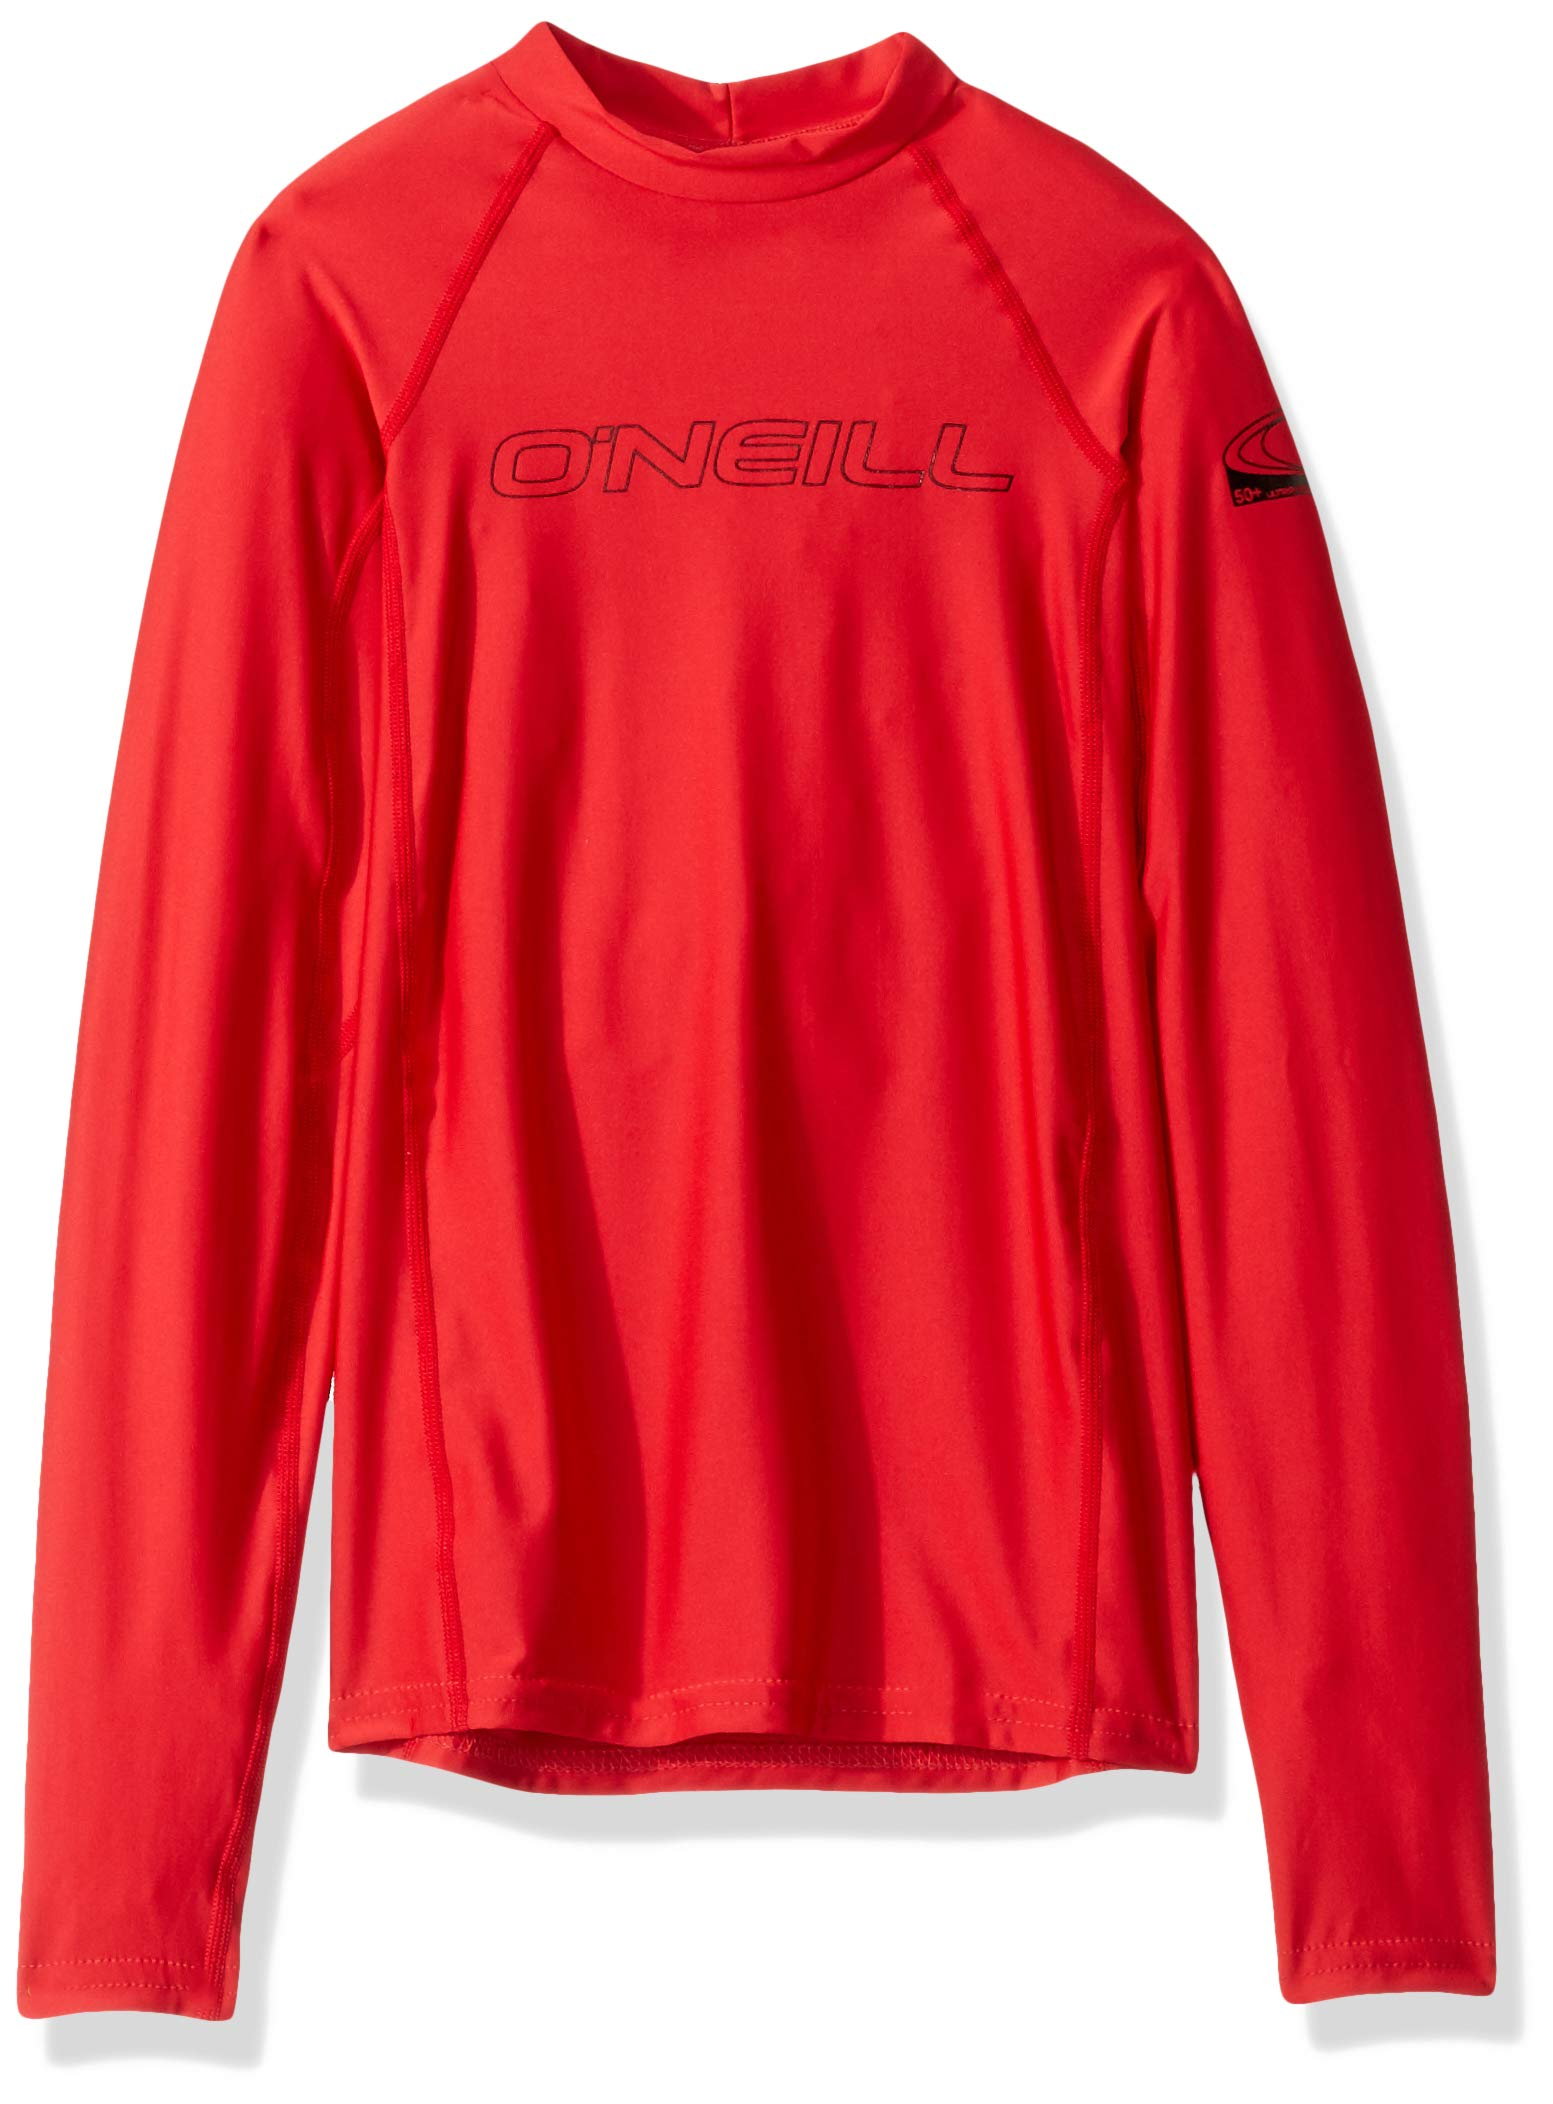 O'Neill Wetsuits Youth Basic Skins UPF 50+ Long Sleeve Sun Shirt, Red, Size 6 by O'Neill Wetsuits